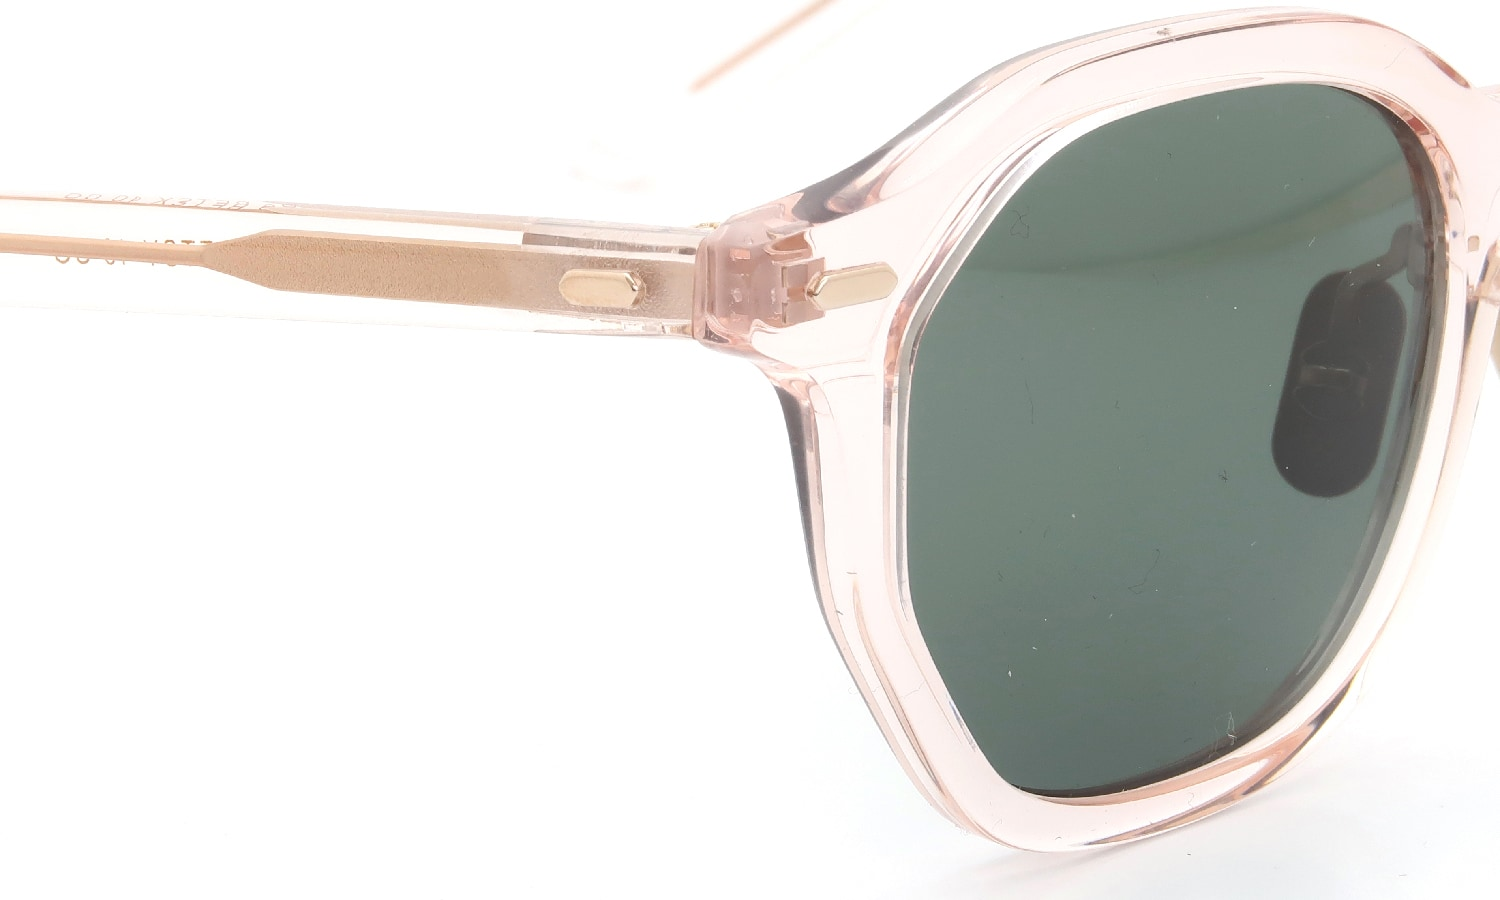 OG × OLIVER GOLDSMITH Re:BETSY 49 SG リ:ベッツィ 5